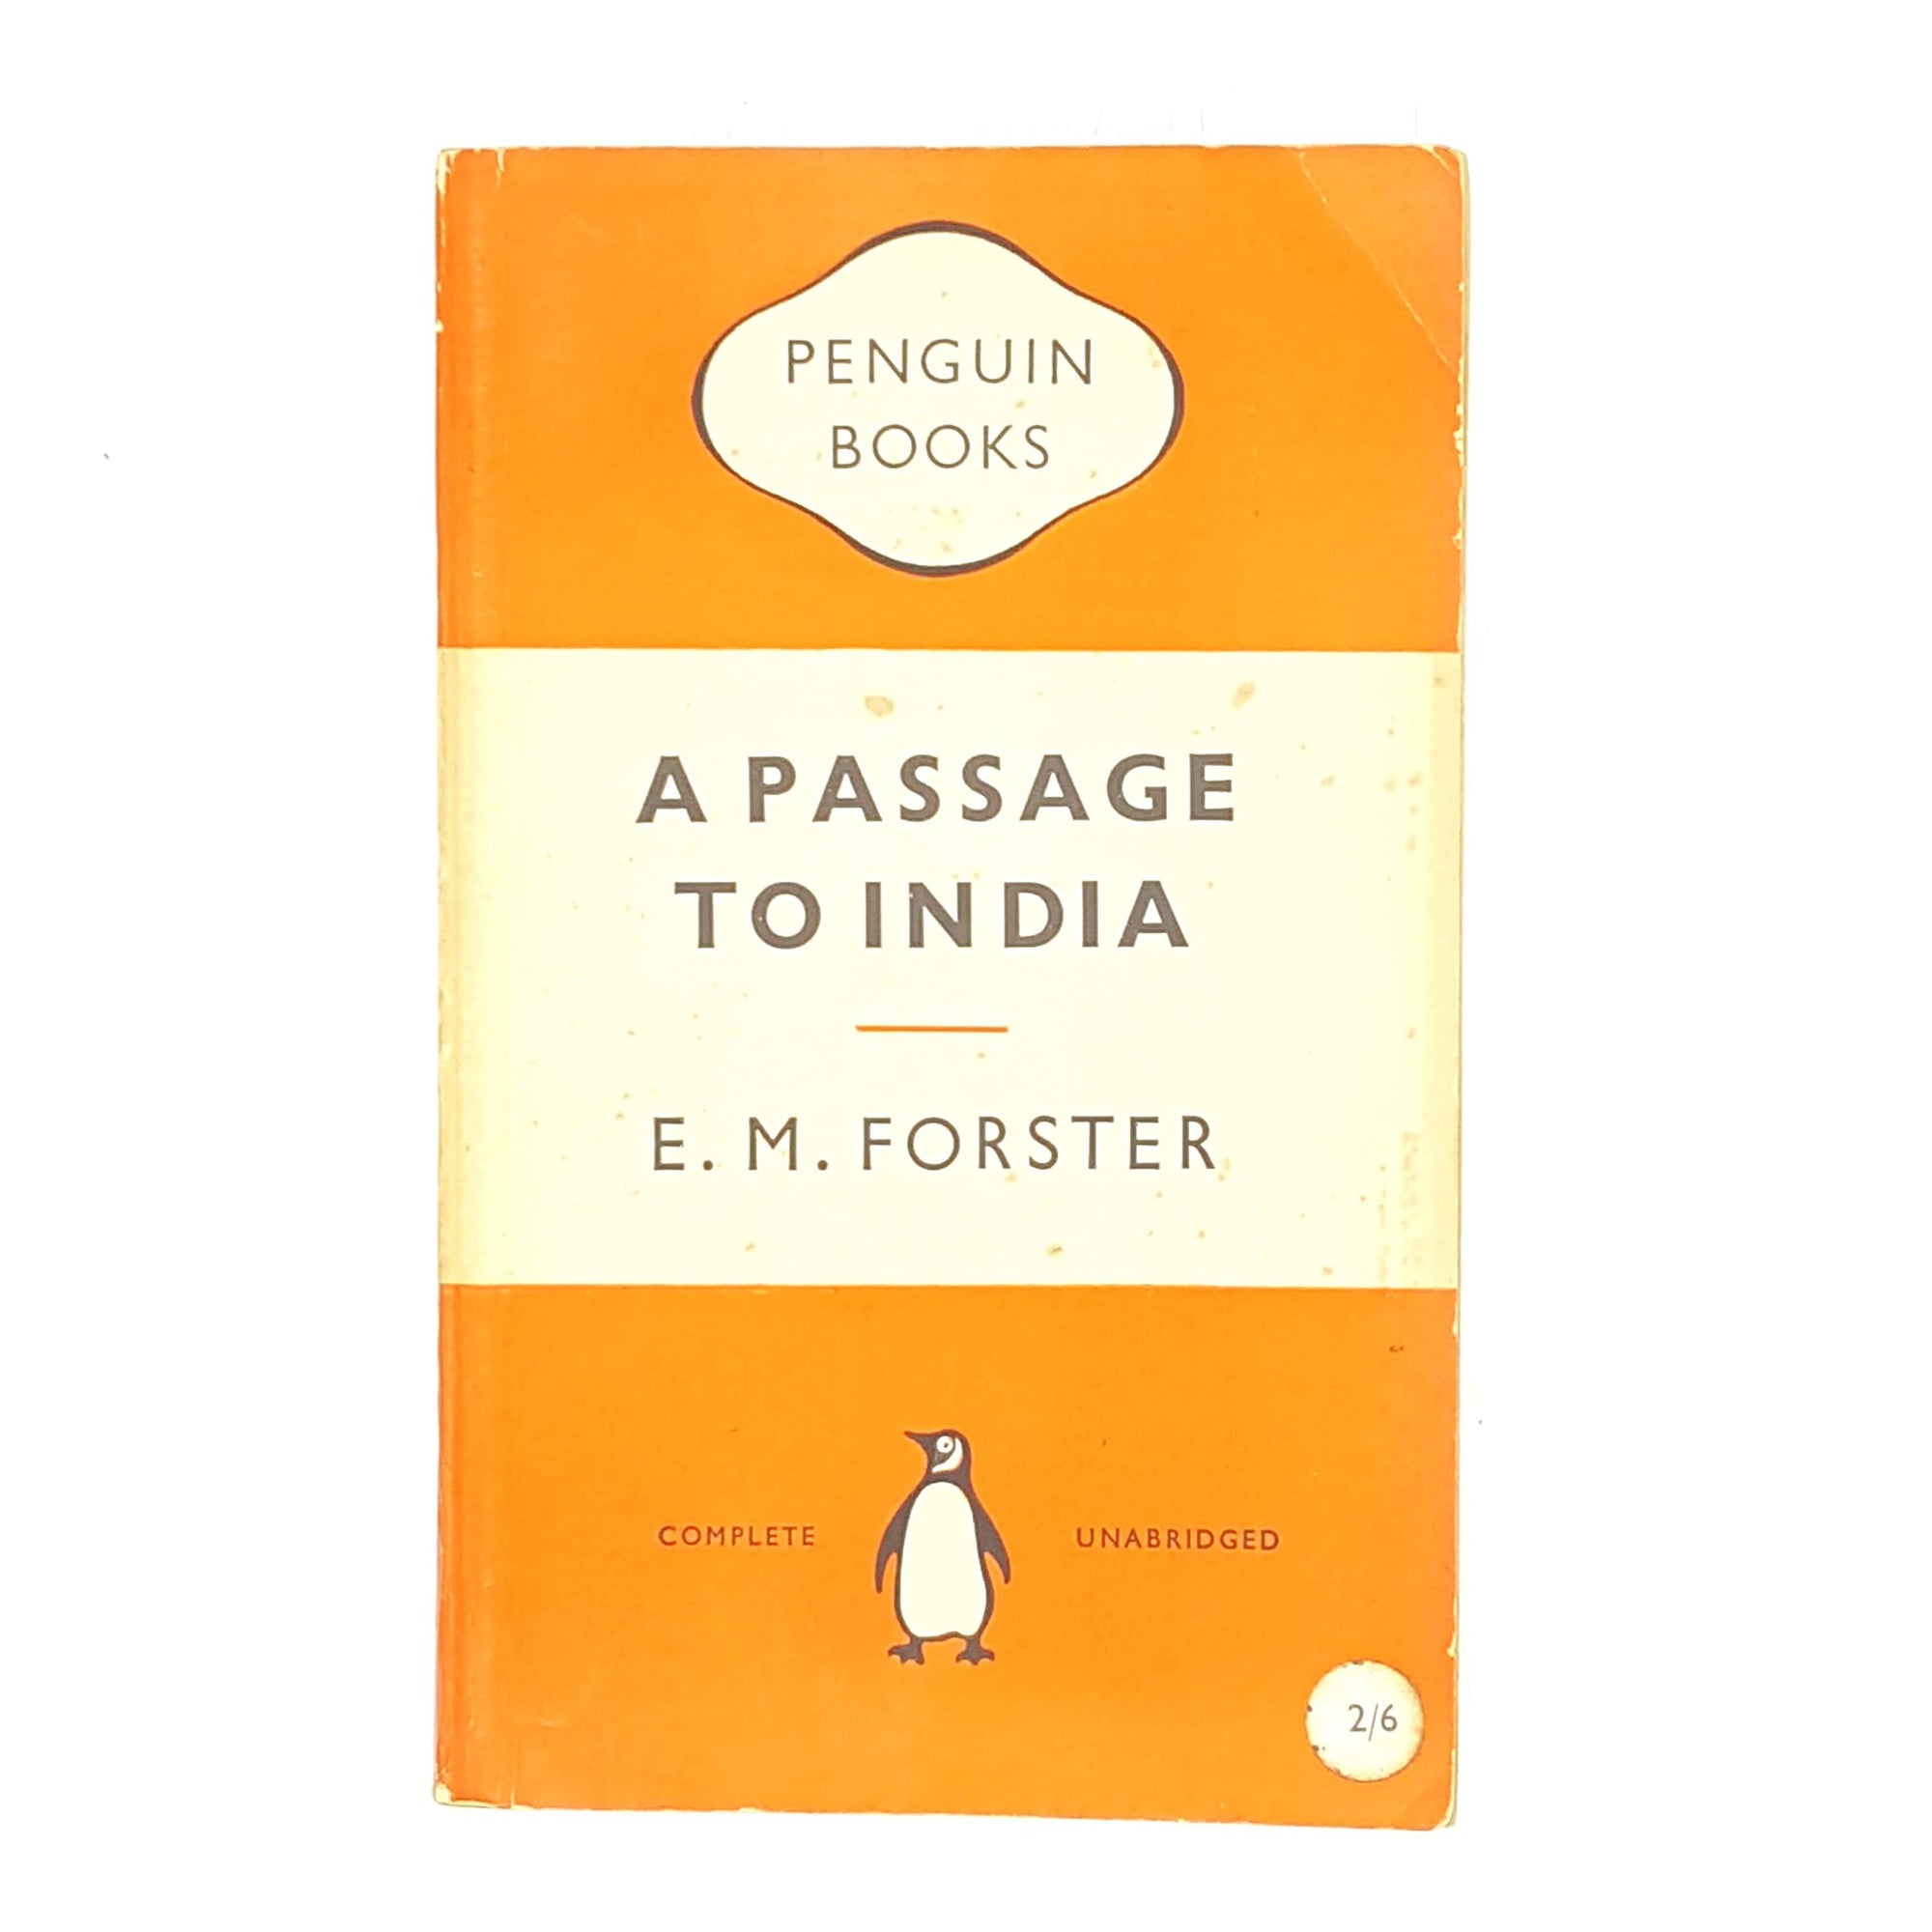 E. M. Forster's A Passage to India 1954